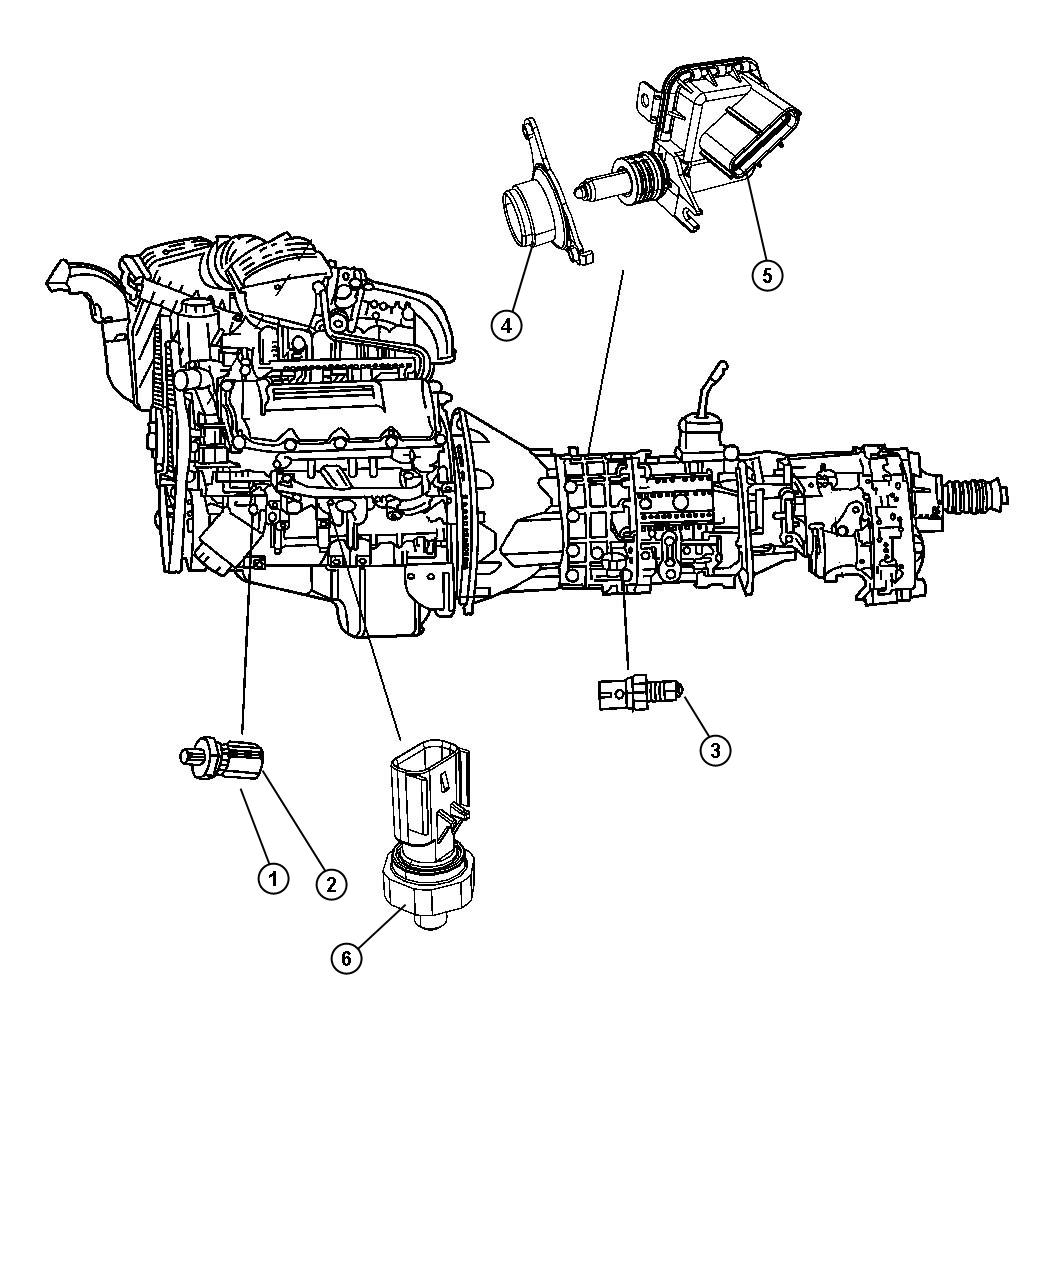 Dodge Ram 1500 Switch. Neutral safety, back up, neutral